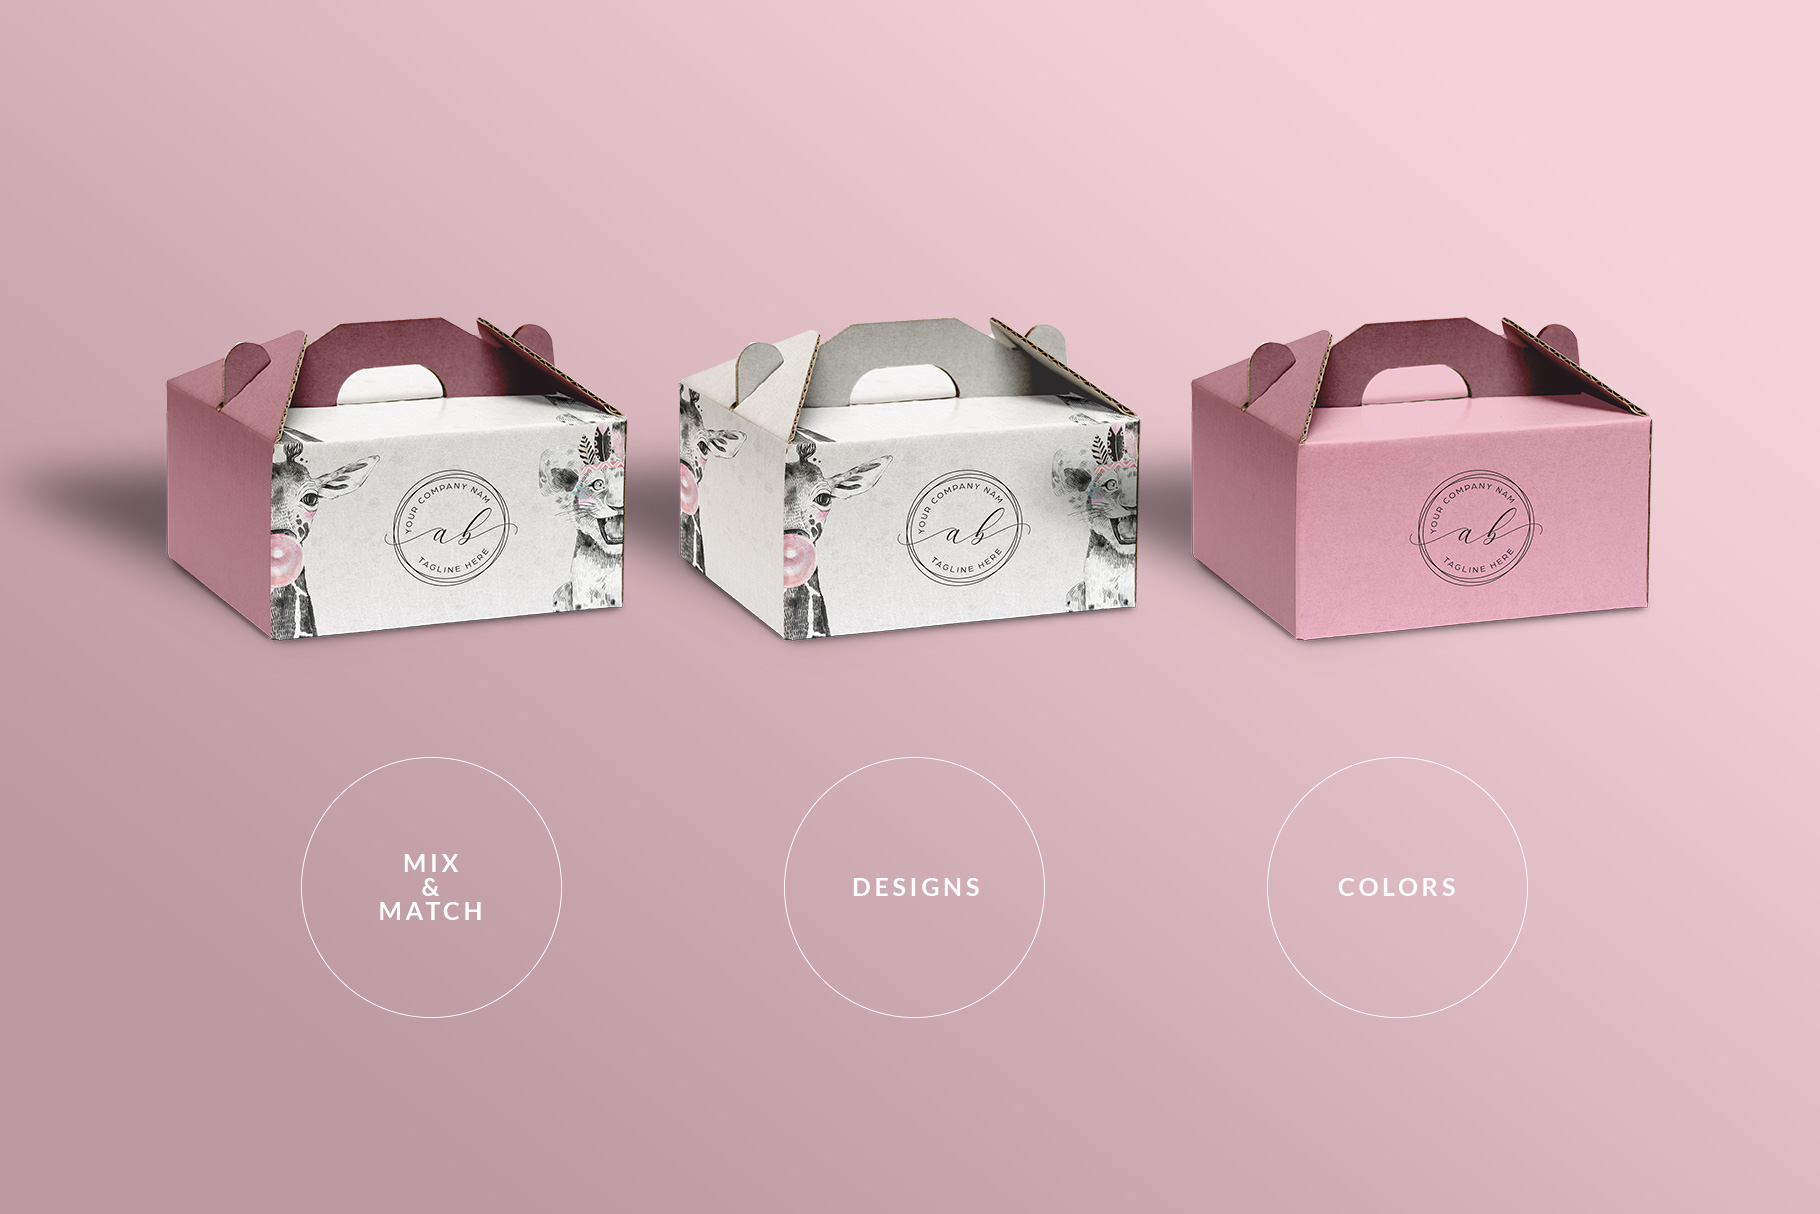 types of the cake box packaging mockup